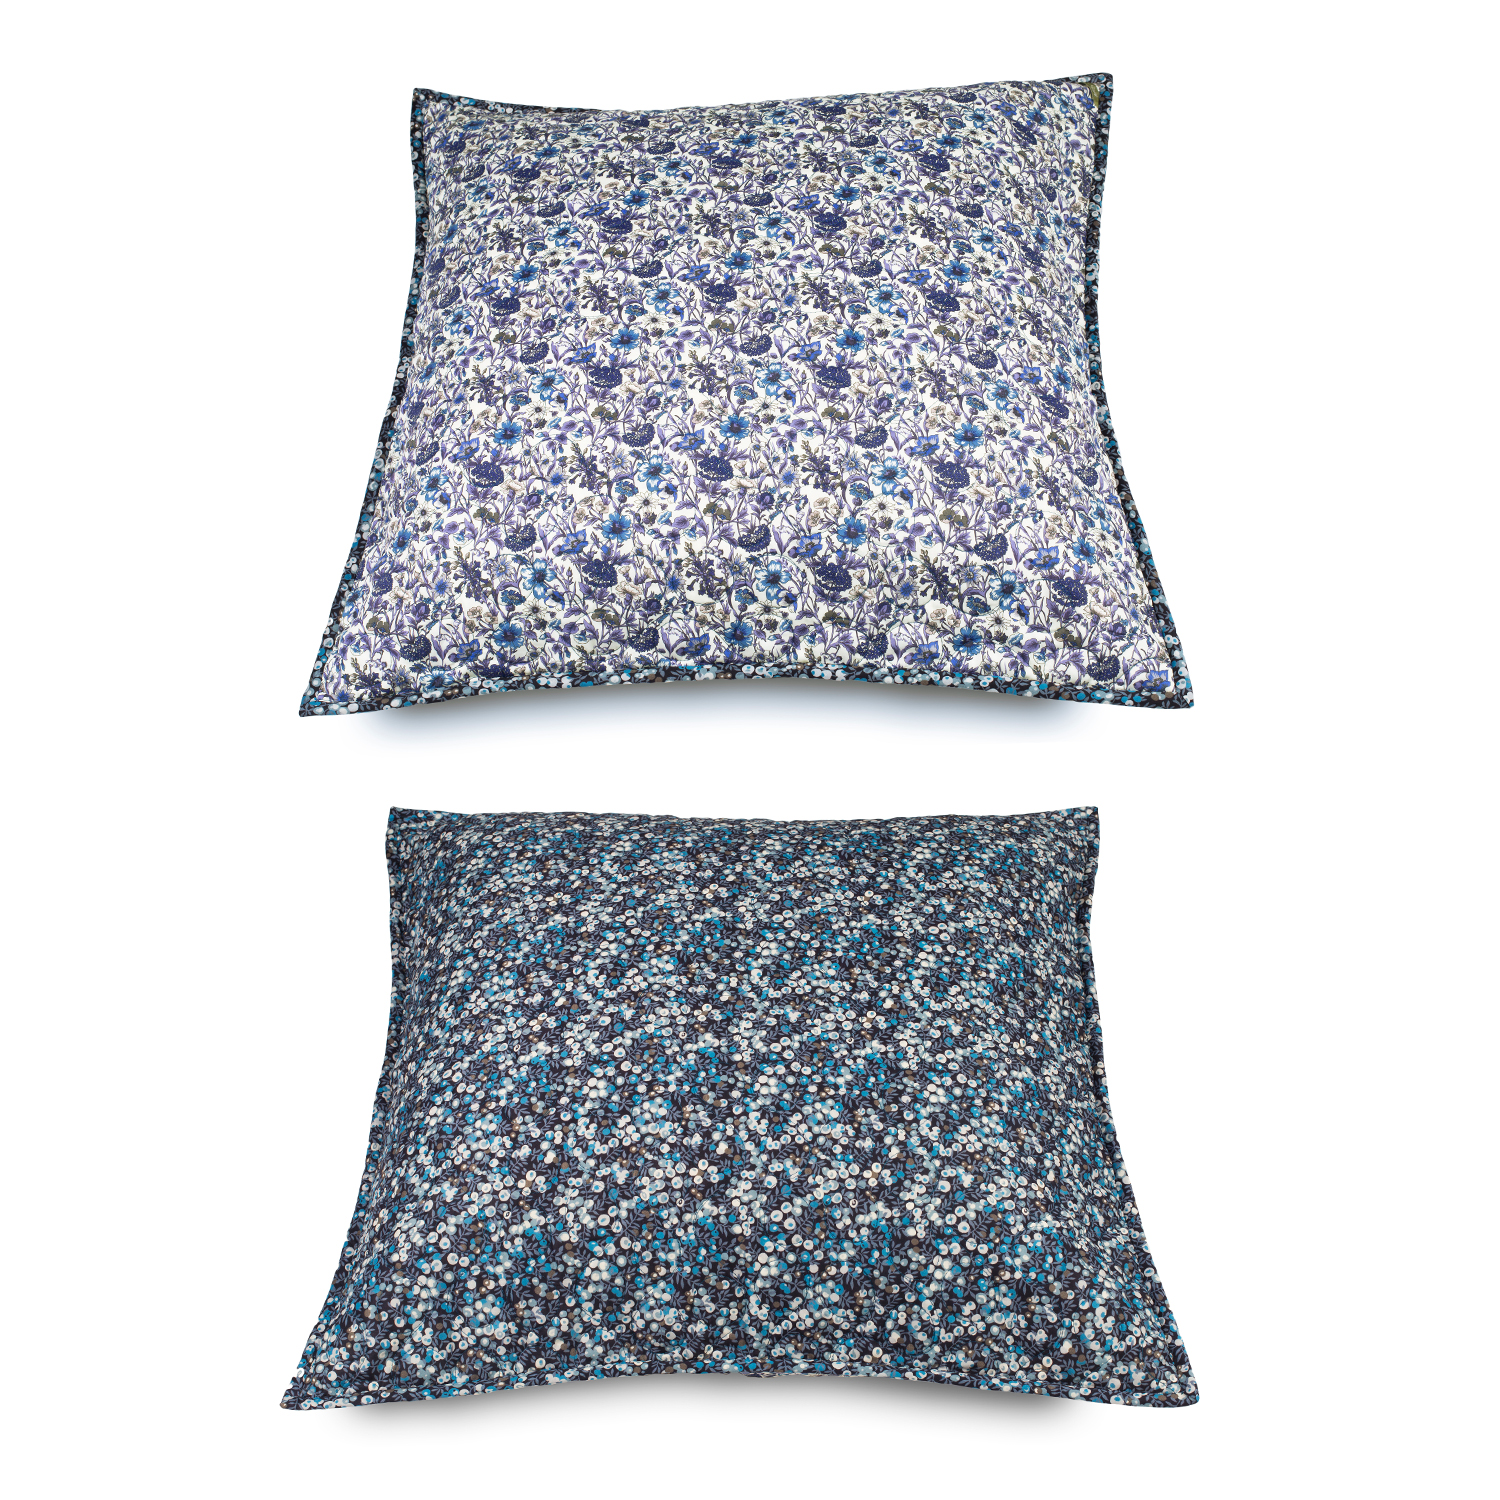 1 CUSHION Cover Liberty Fabrics Prints STAR 1004  40X40cm.